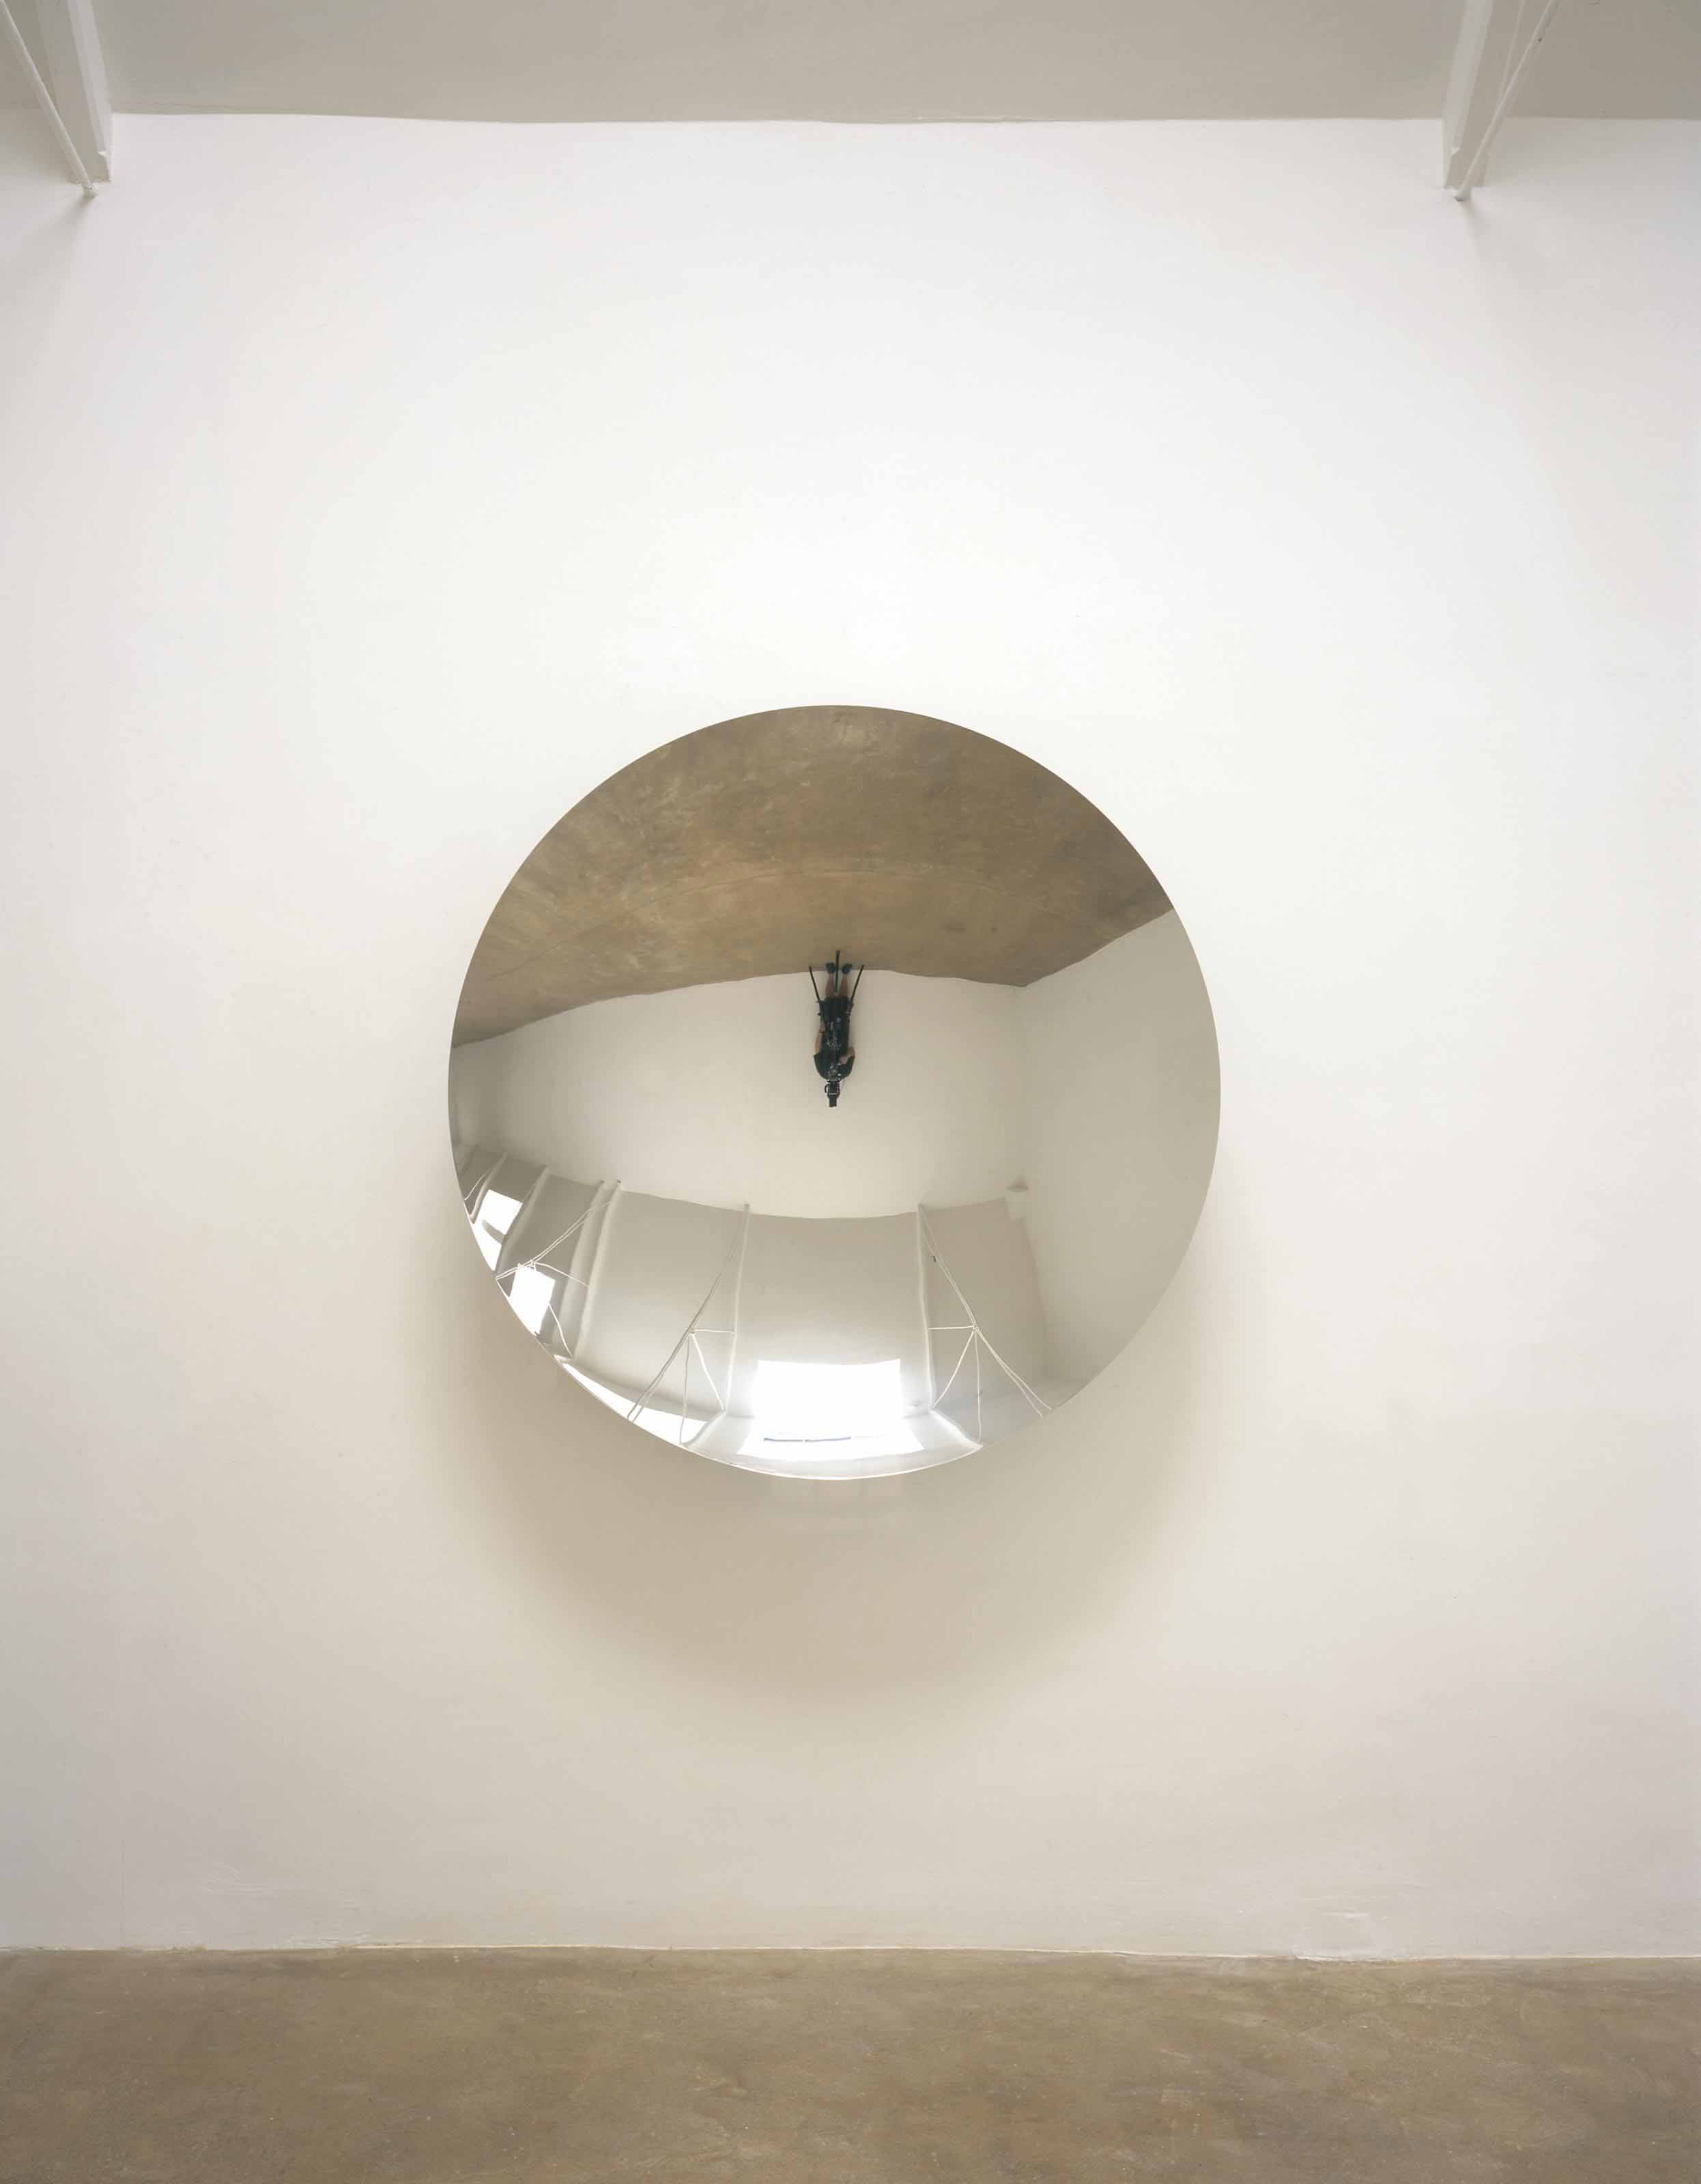 Anish Kapoor (b. 1954)